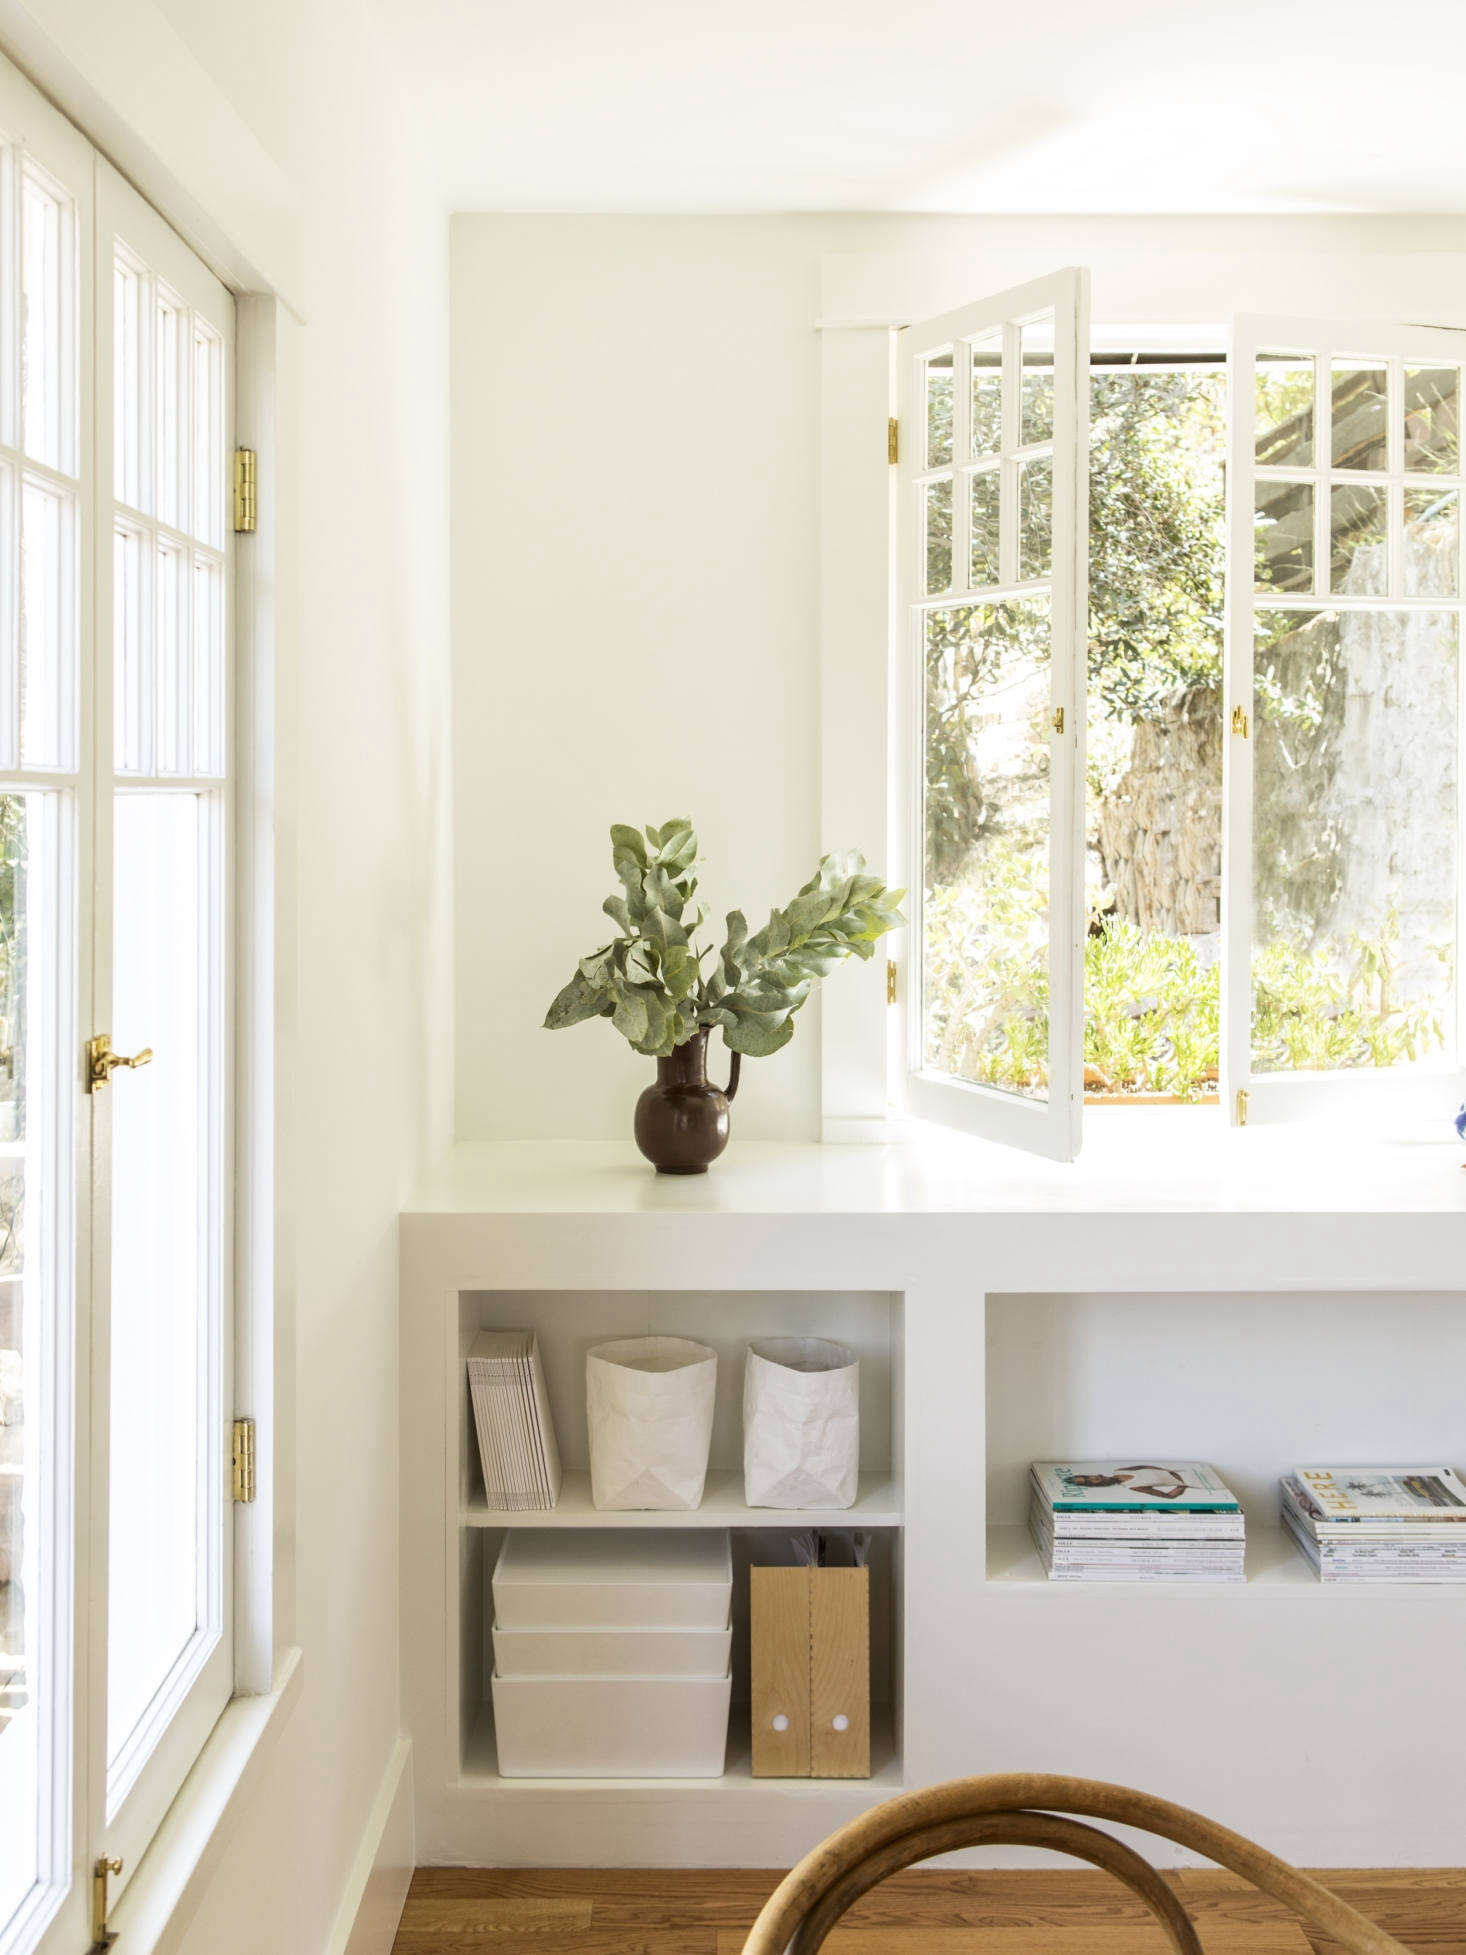 One of the main reasons that Kathleen opted for all-white walls is that&#8